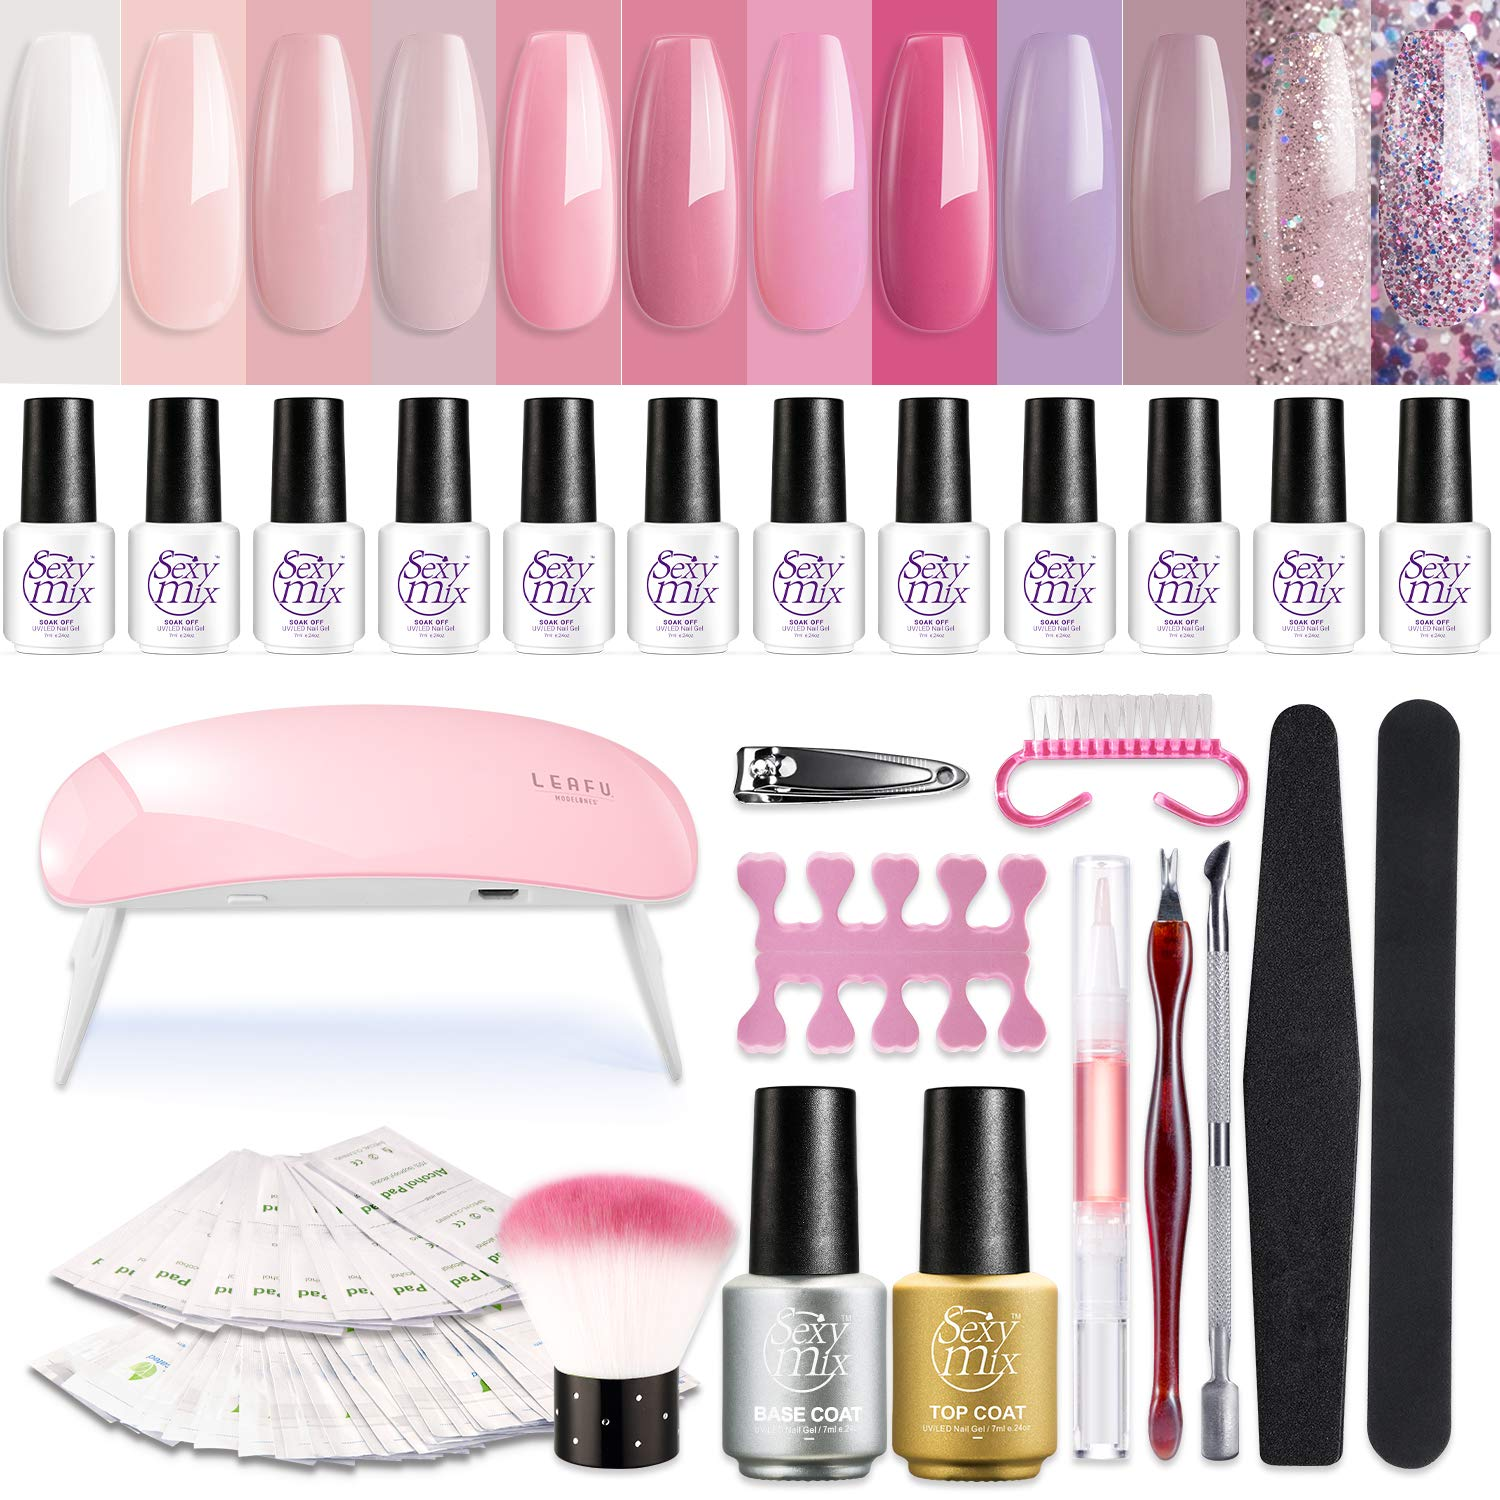 SEXY MIX Gel Nail Polish Starter Kit with UV Light, with Mini 12 Lovely Pink Colors Soak Off Gel Nail Polish, Base and Top Coat, Nail Art Manicure Tools Kit